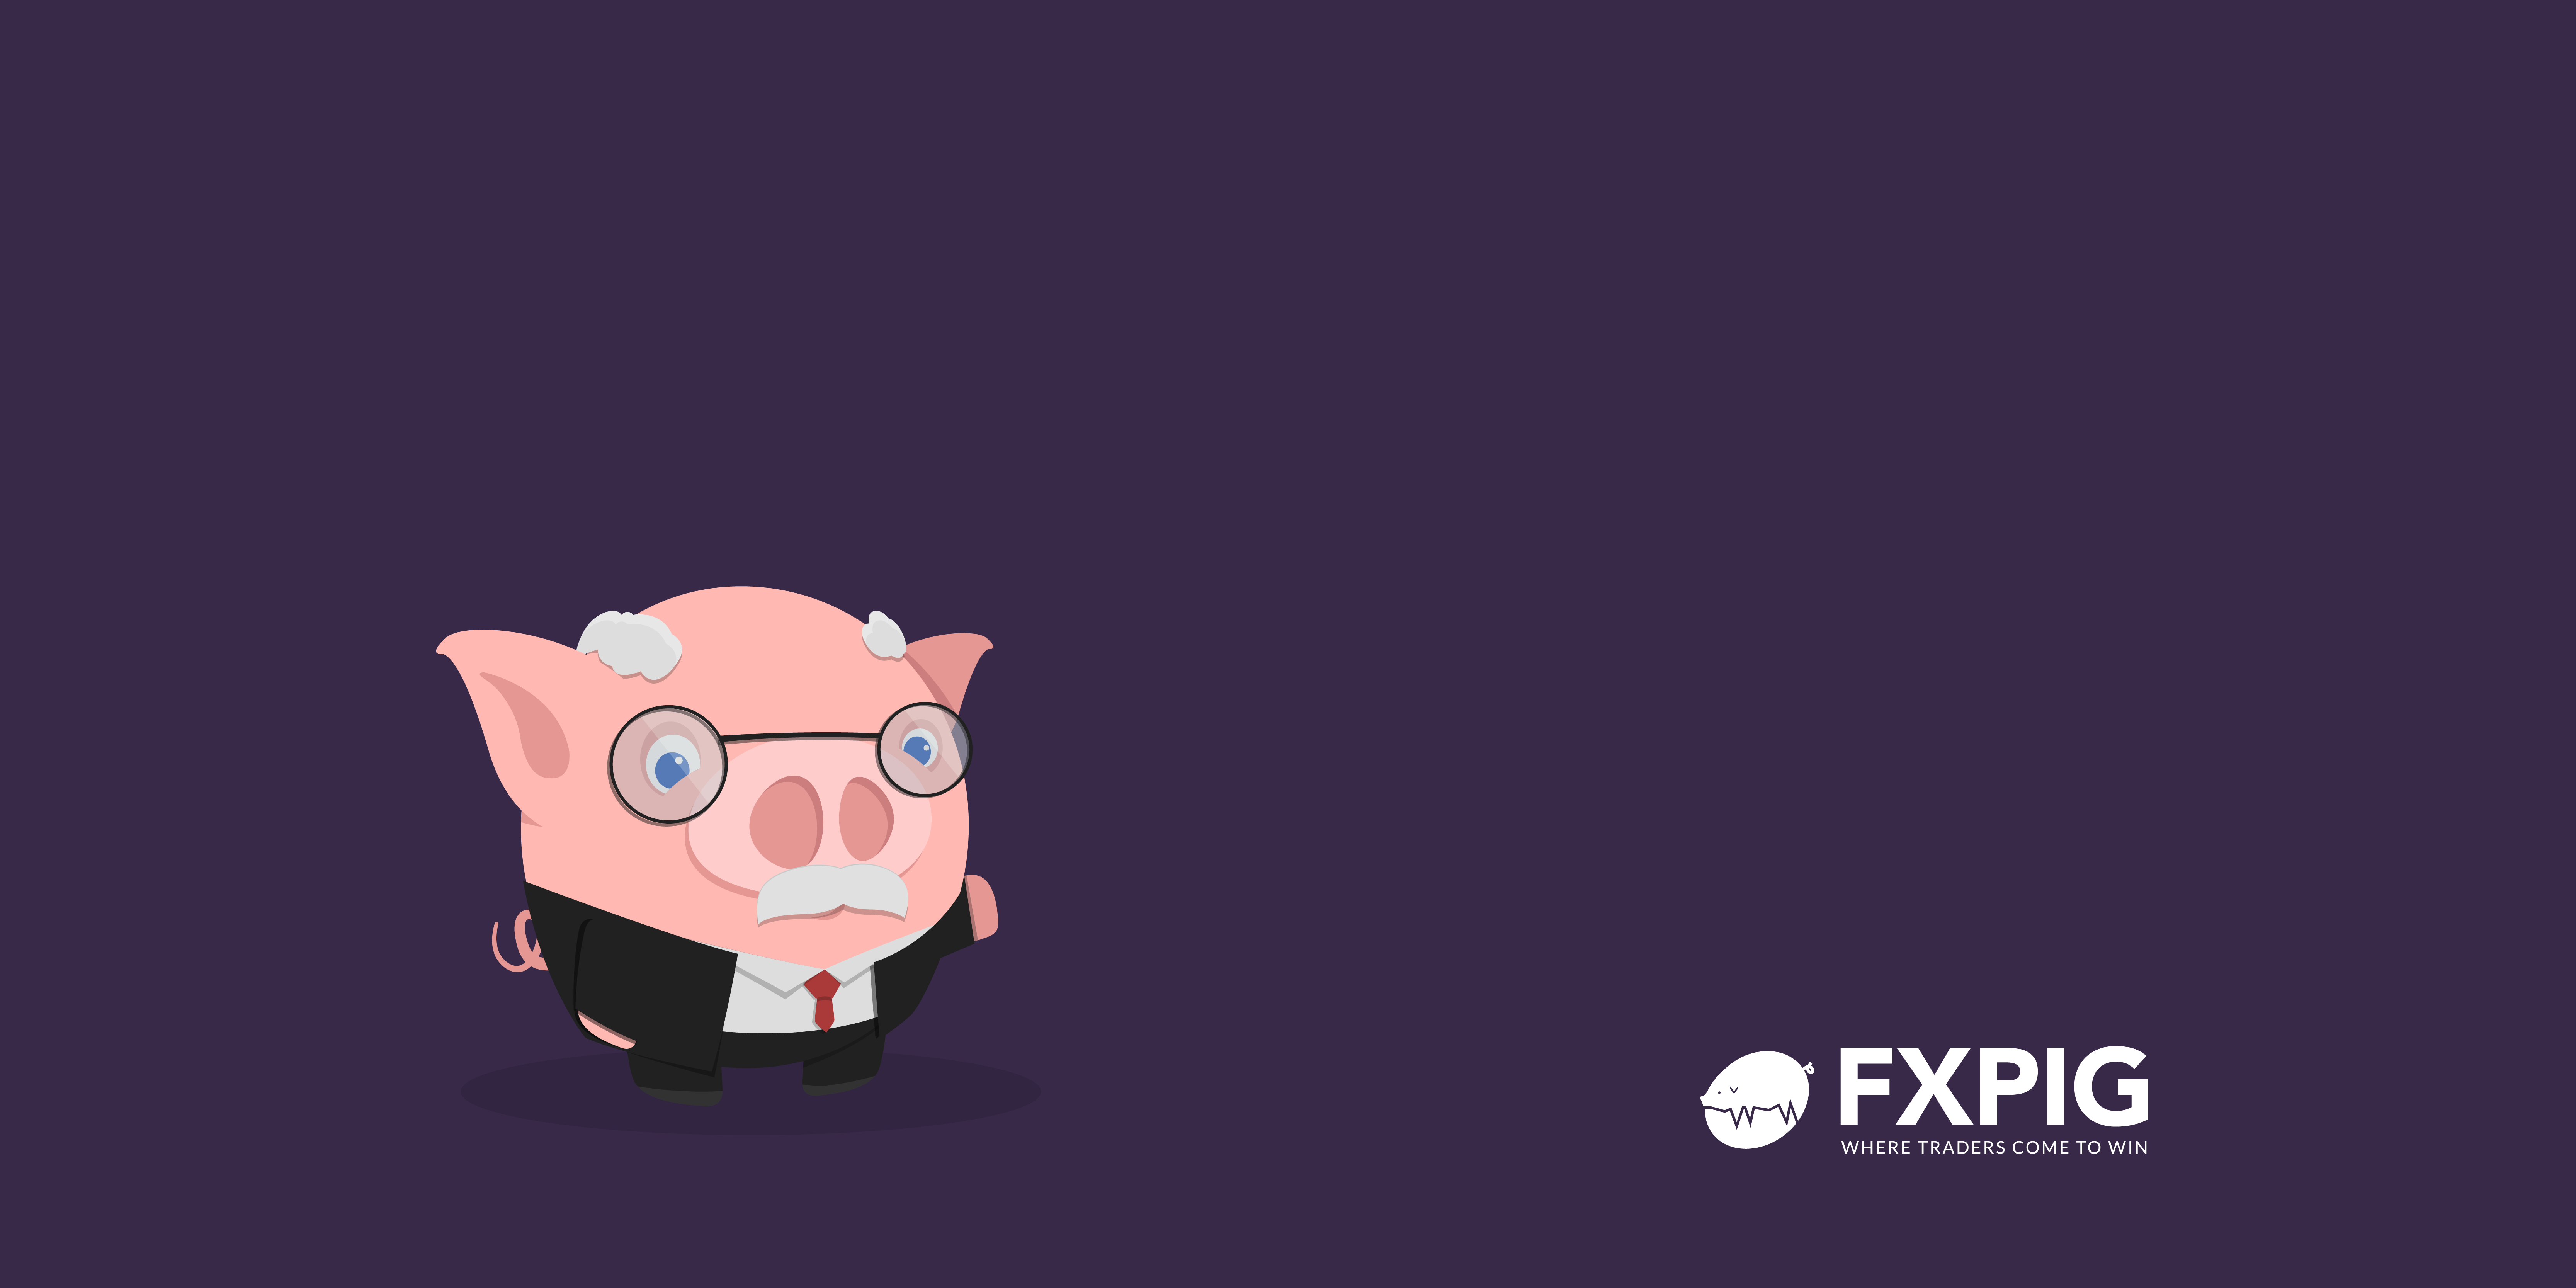 FOREX_trading-quote_wisdom-pig-insider_FXPIG